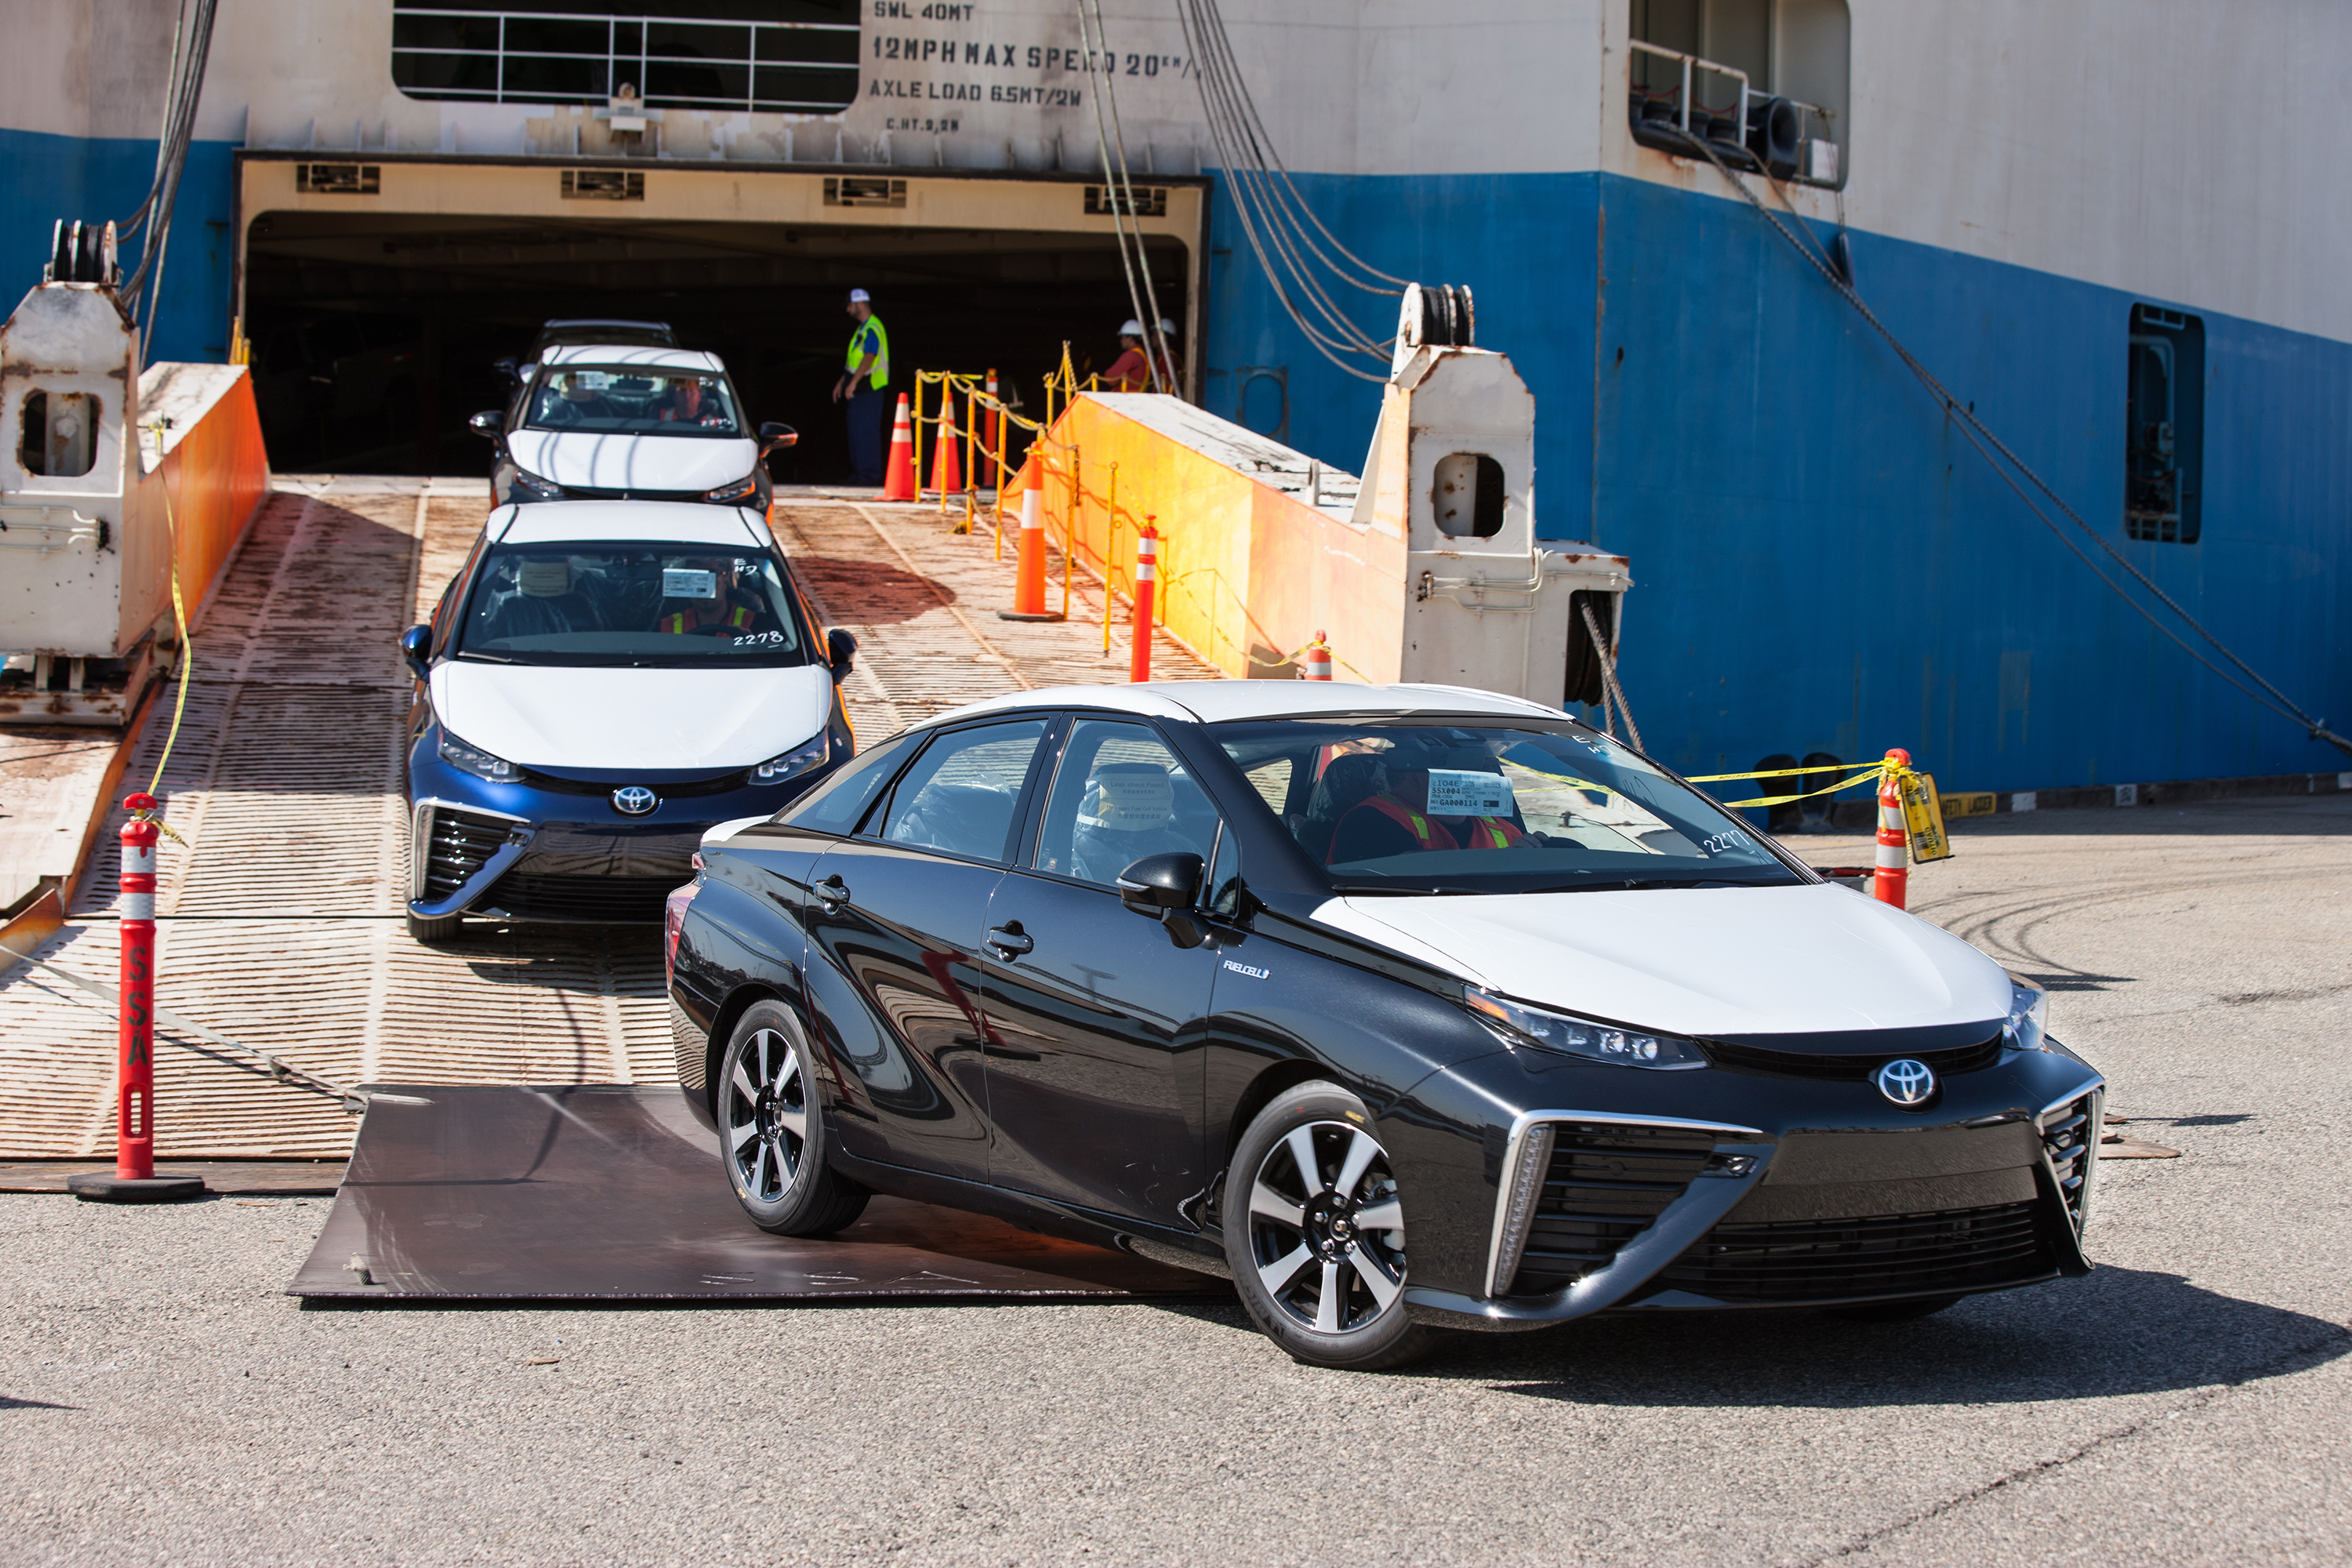 The 2016 Toyota Mirai hydrogen fuel cell car is entering the U.S. market.